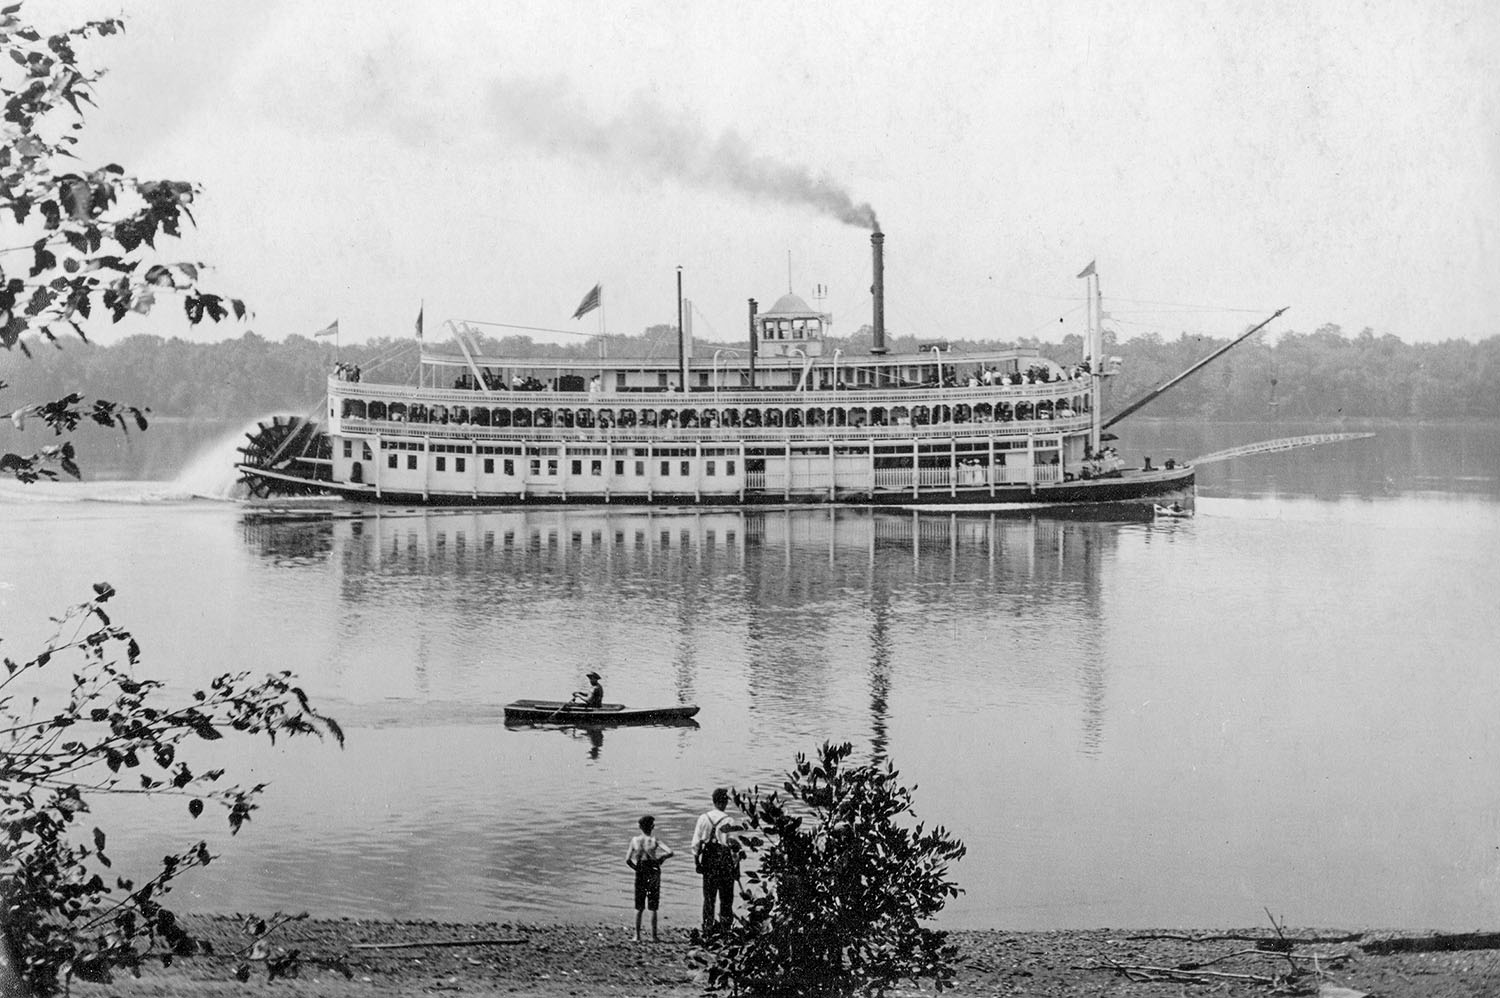 The sternwheel excursion steamer J.S., named for Capt. John Streckfus. (Keith Norrington collection)